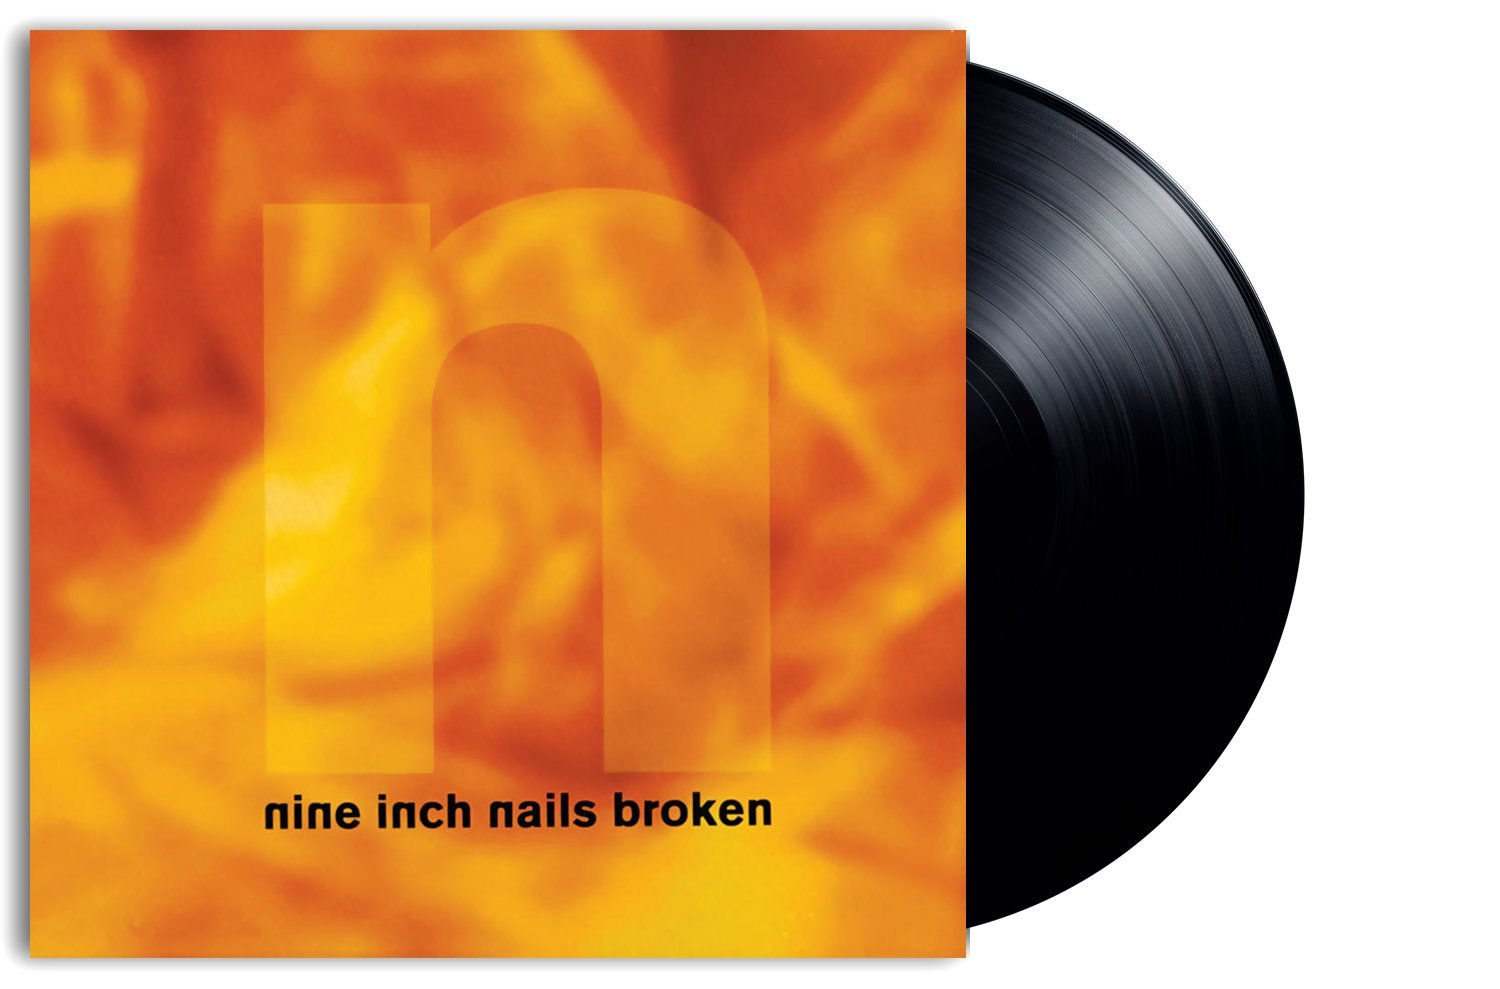 Nine Inch Nails - Broken [LP/7\